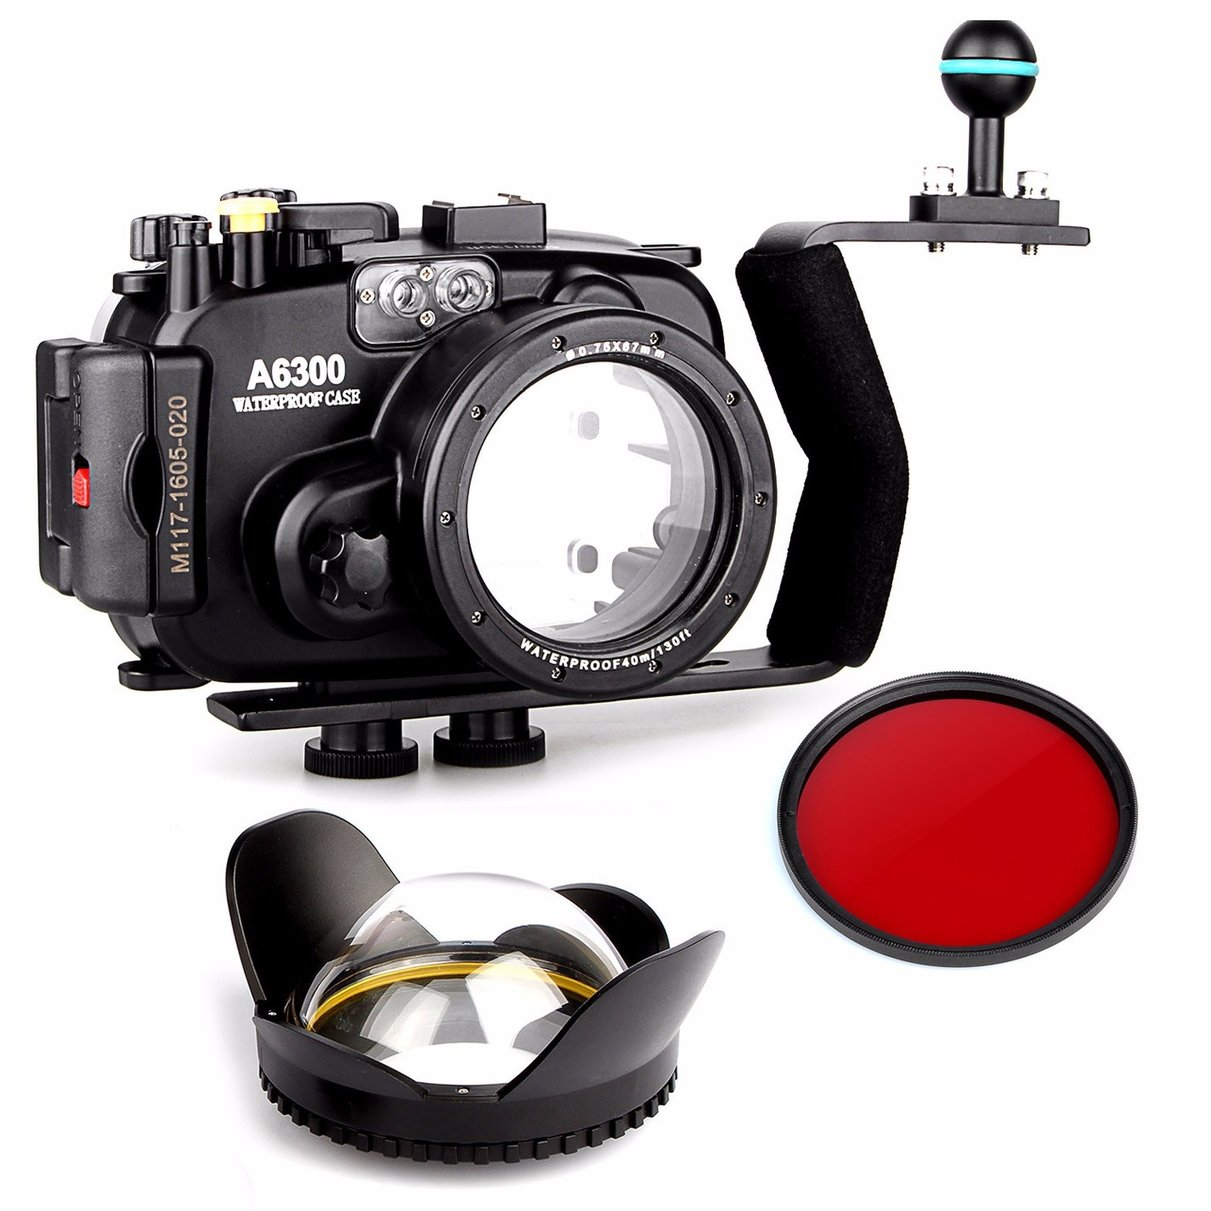 EACHSHOT 40m/130ft Waterproof Underwater Camera Housing Case for A6300 + Aluminium handle + 67mm Fisheye Lens + 67mm Red Filte camera 67mm 0 7x fisheye wide angle lens dome port 67mm round for underwater waterproof diving housing case bag